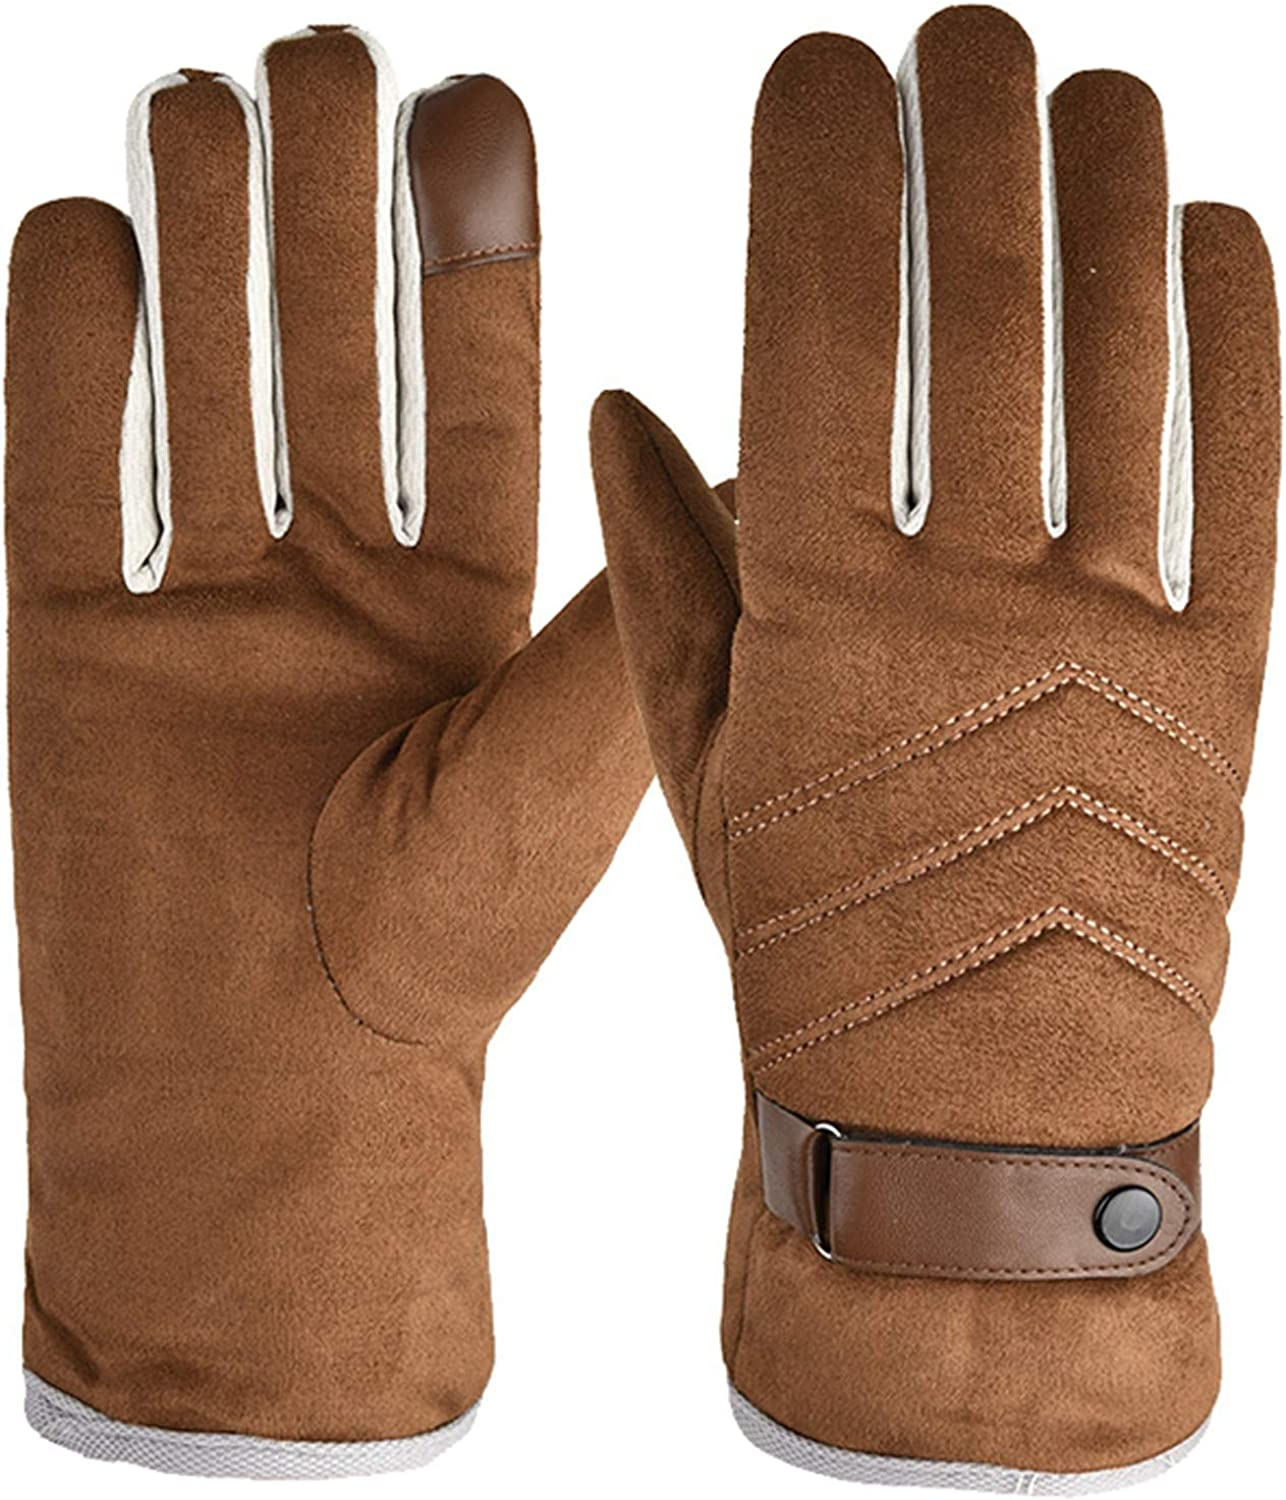 Adult's Ski Gloves,Outdoor Windproof Warm Cold And Velvet Sports Riding Skating Gloves